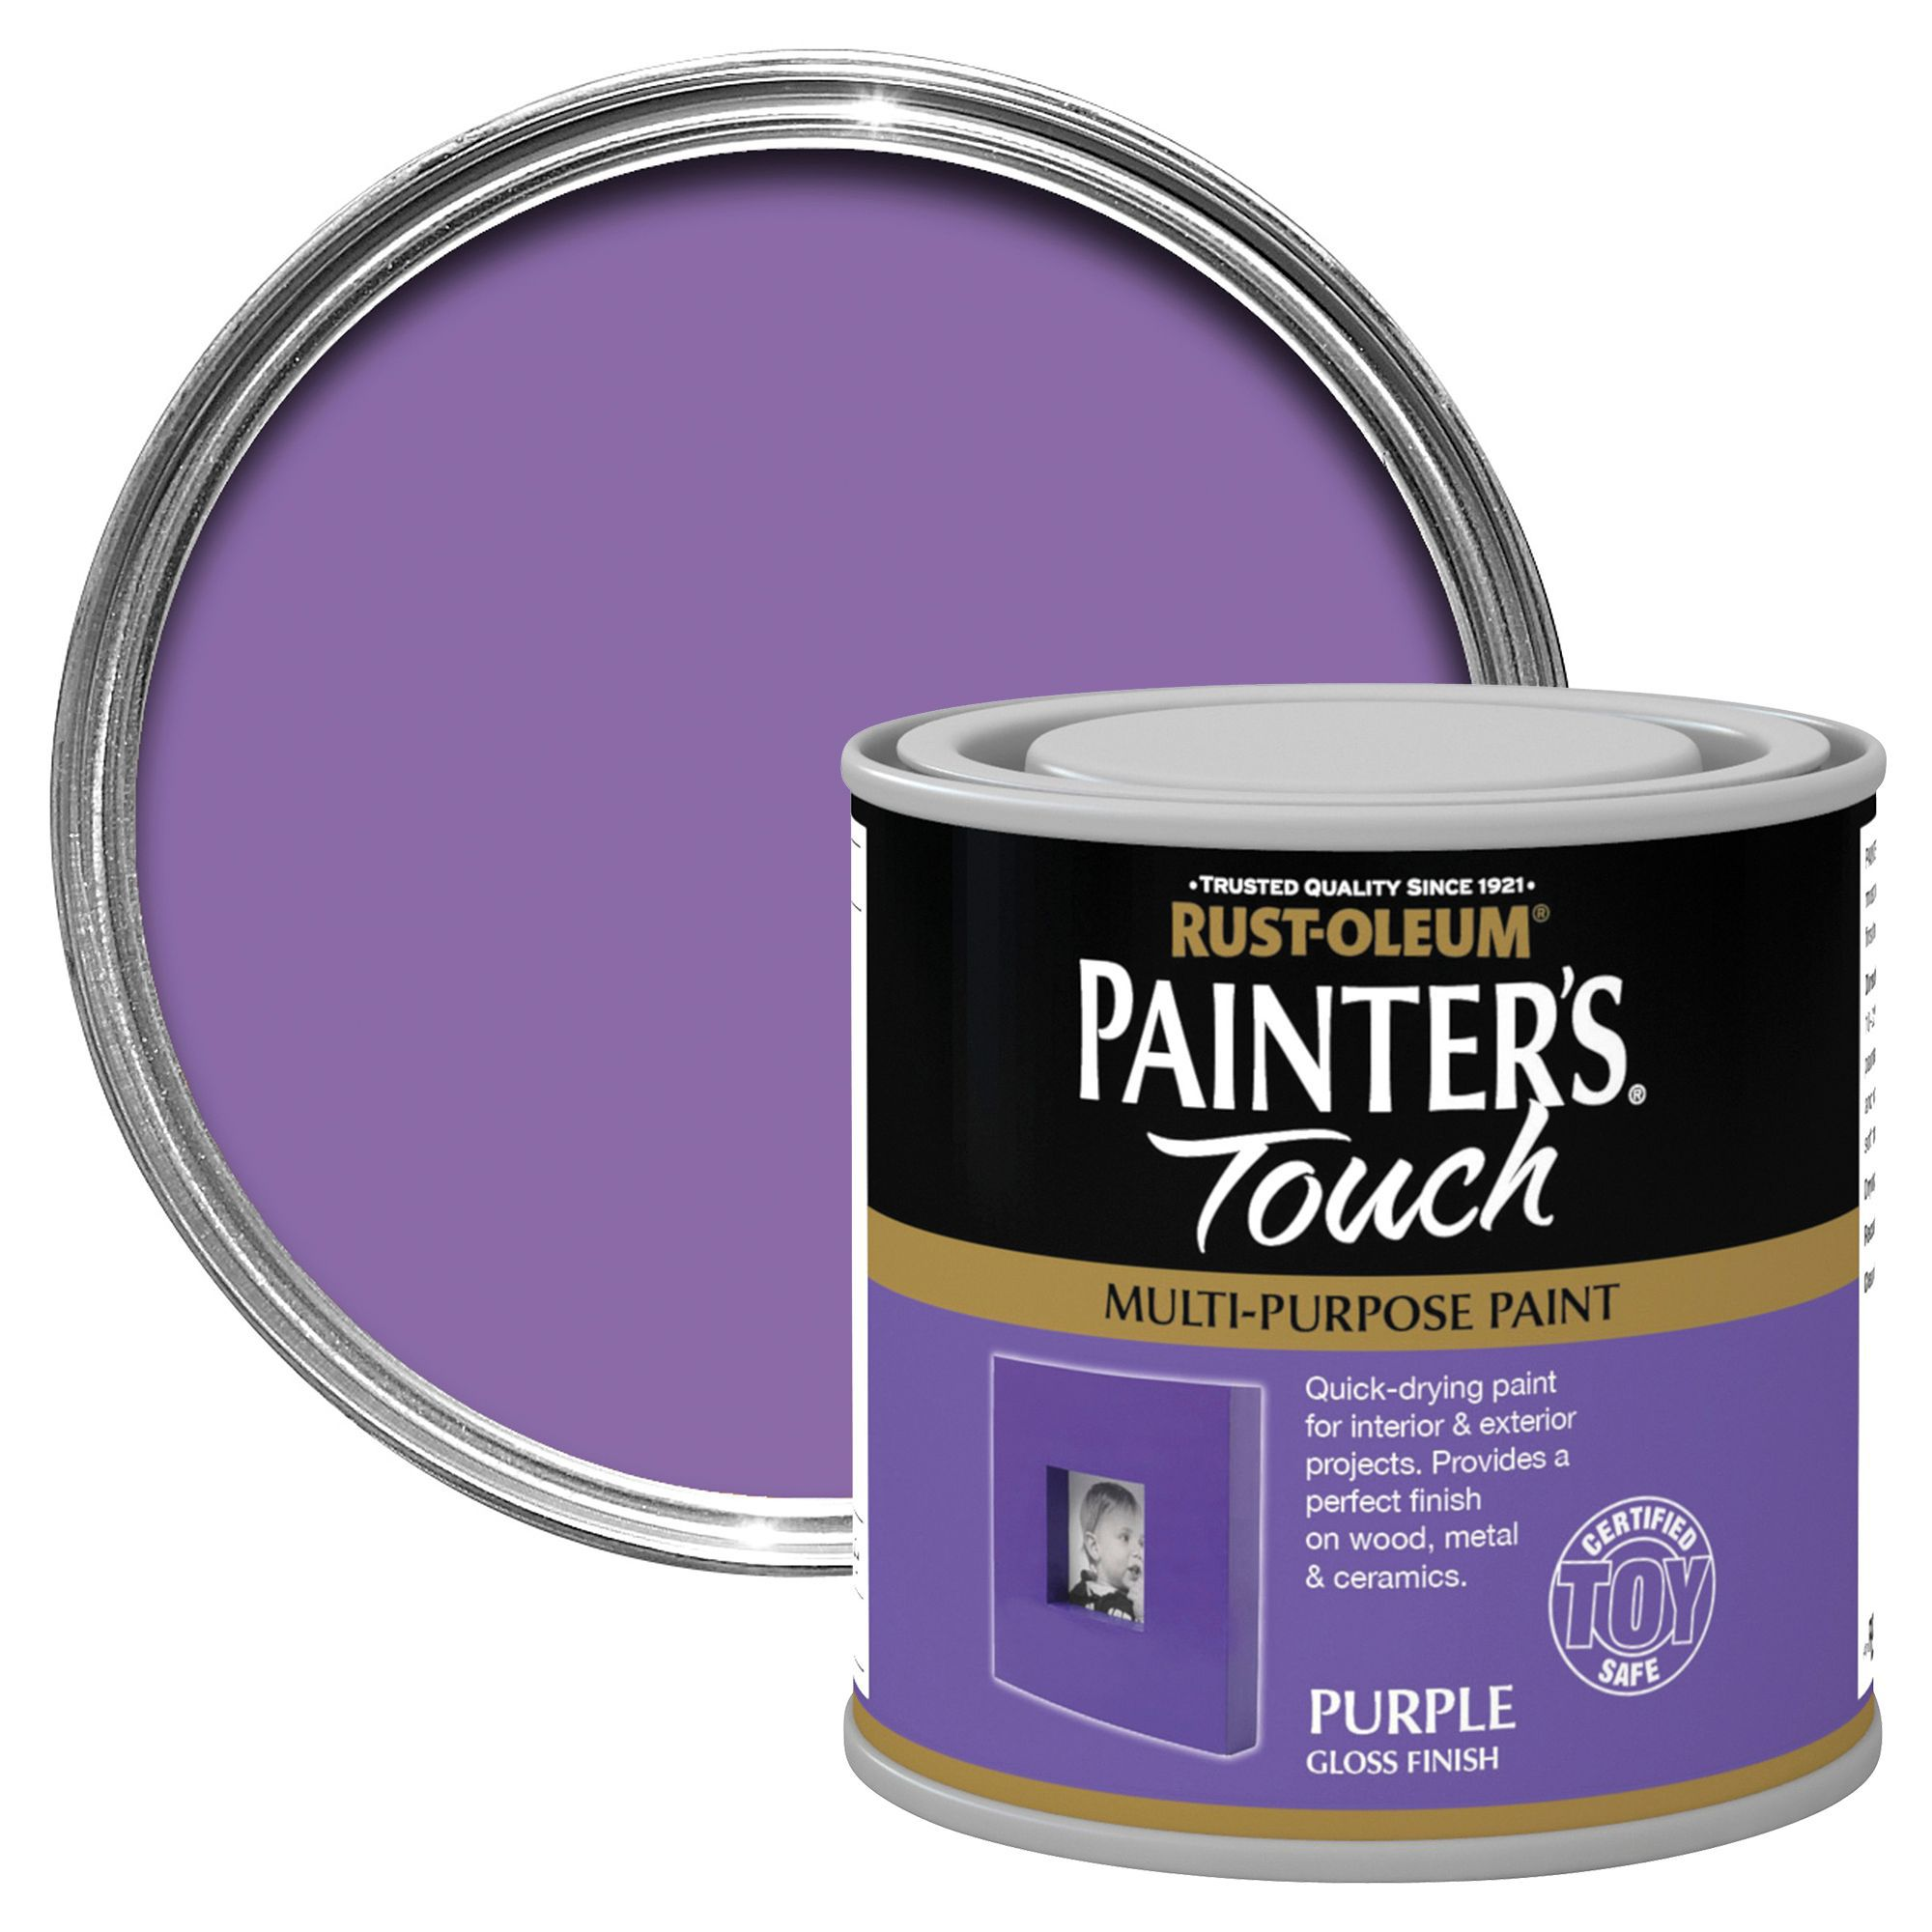 Purple-Exterior-Gloss-Paint. Rust Oleum Painters Touch Interior Exterior Purple Gloss Multipurpose Paint 250ml Departments Diy At Bq